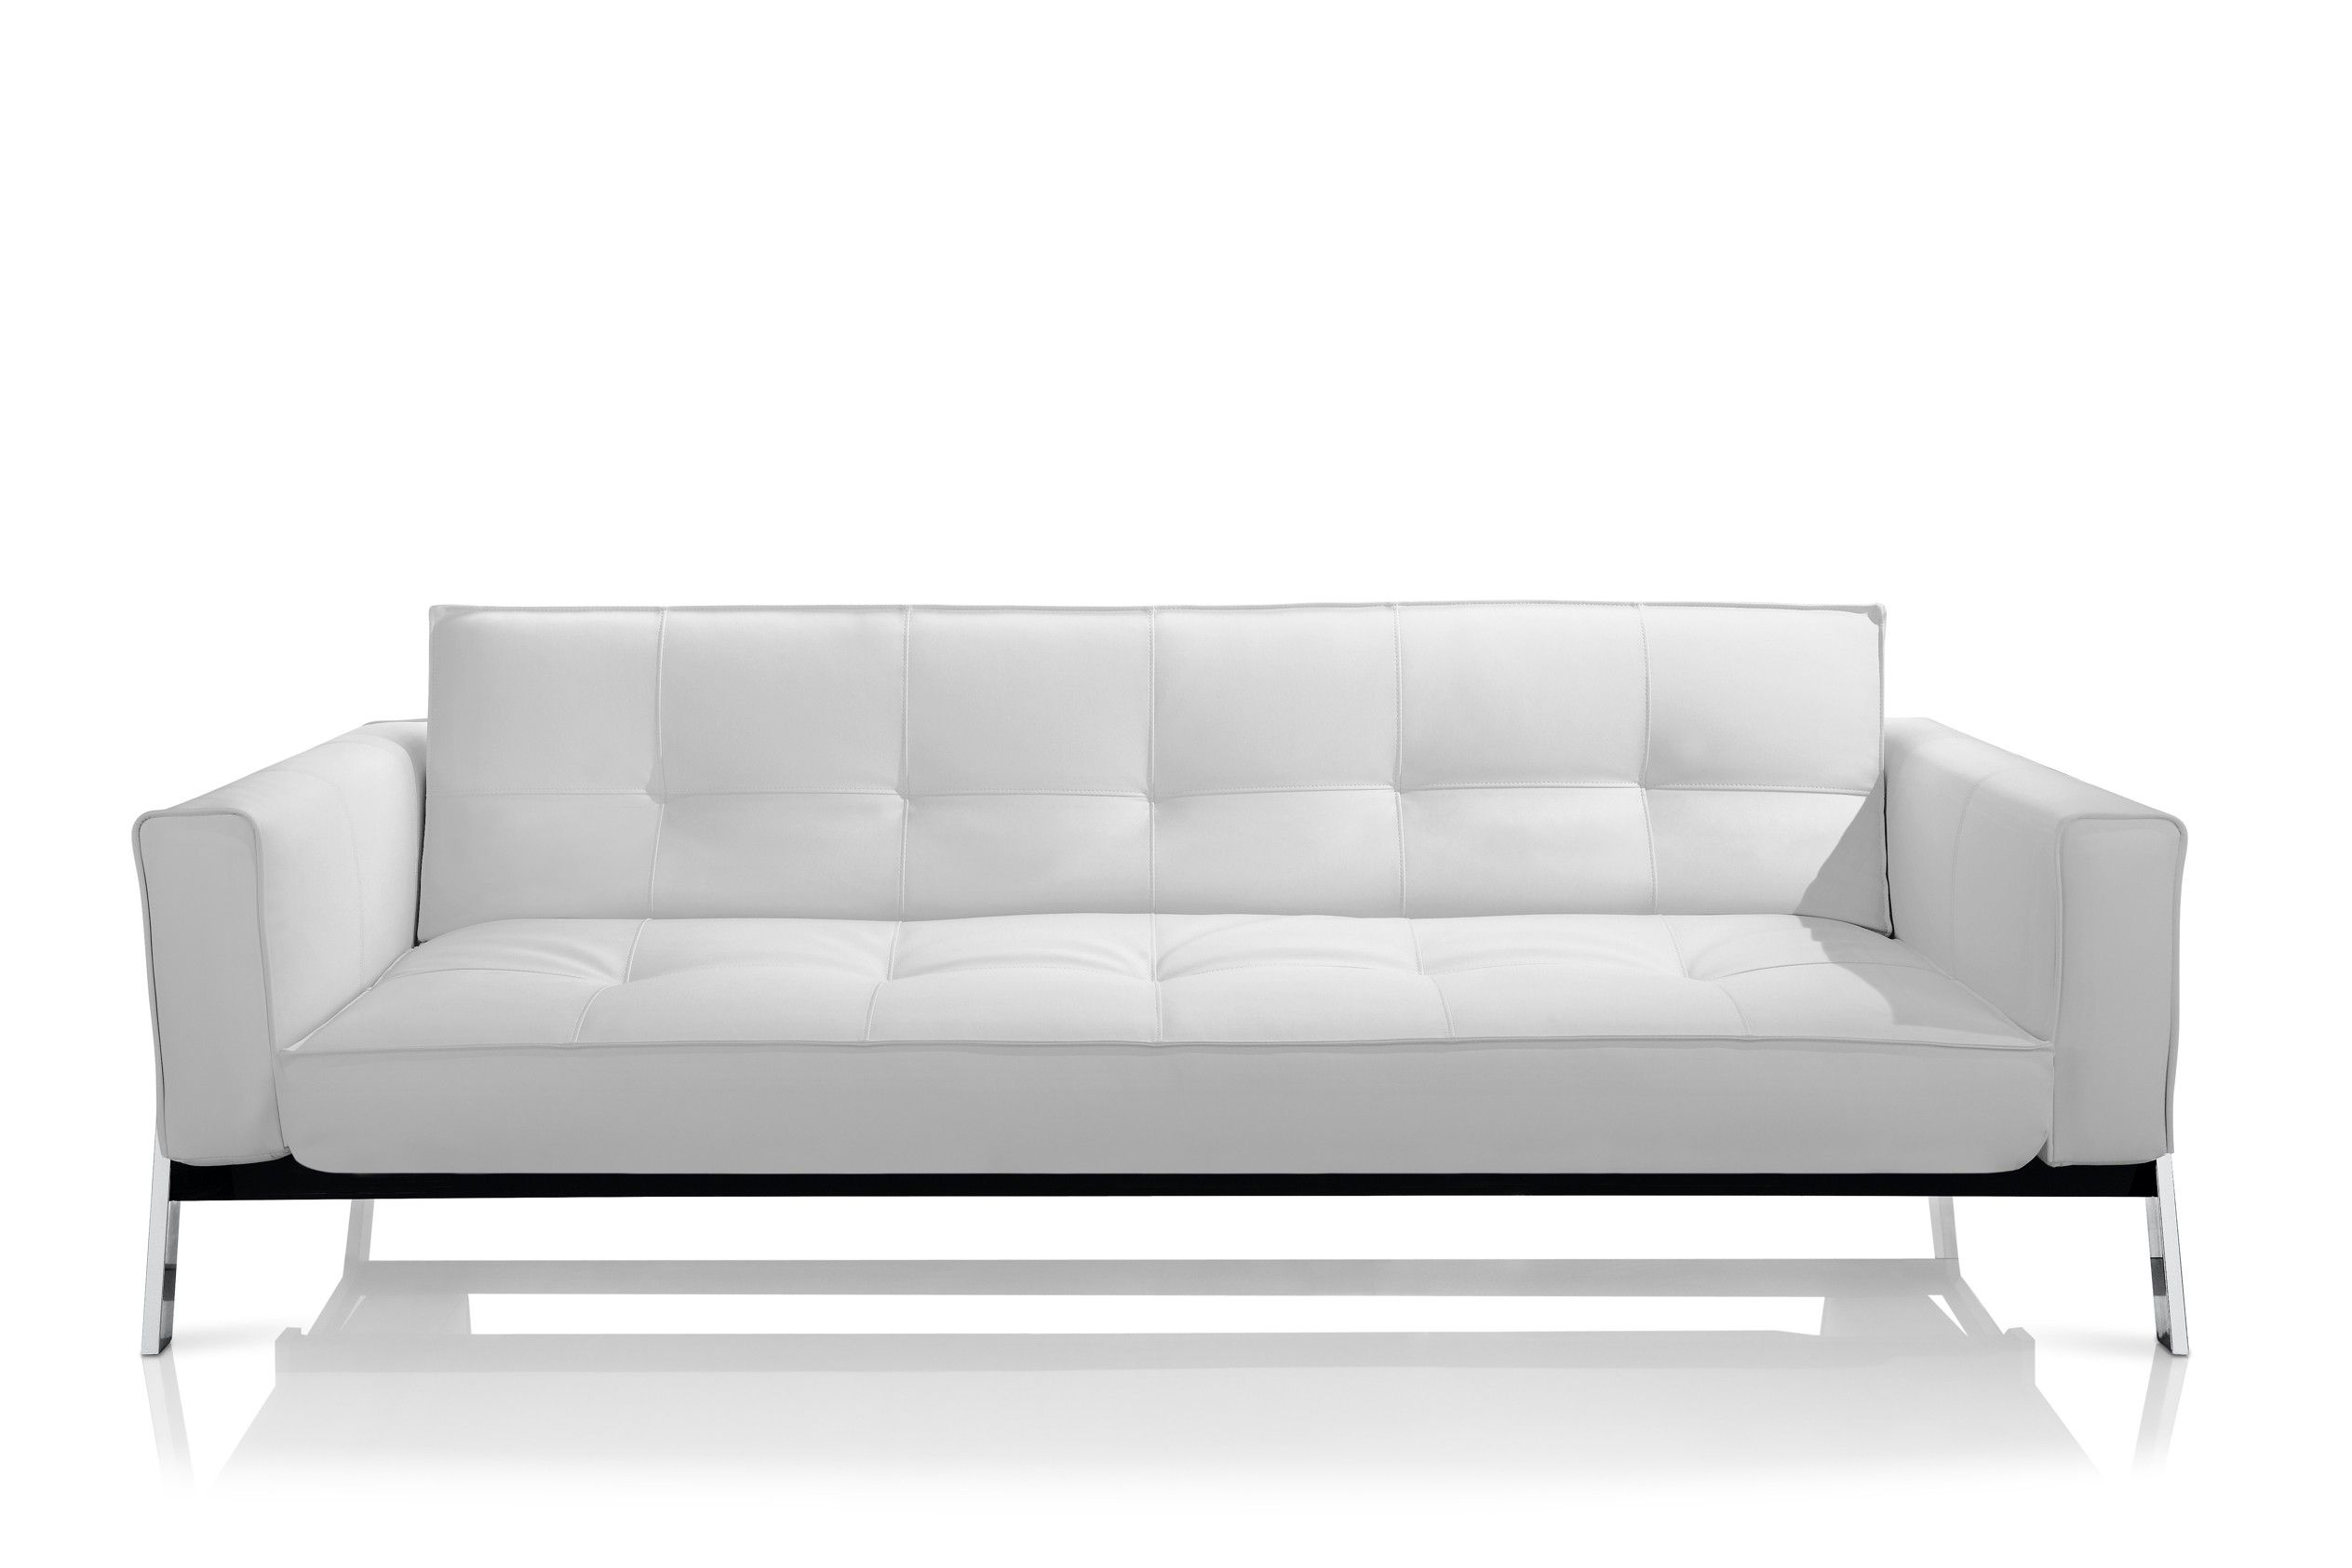 awesome white fabric sofa new white fabric sofa 30 sofas. Black Bedroom Furniture Sets. Home Design Ideas